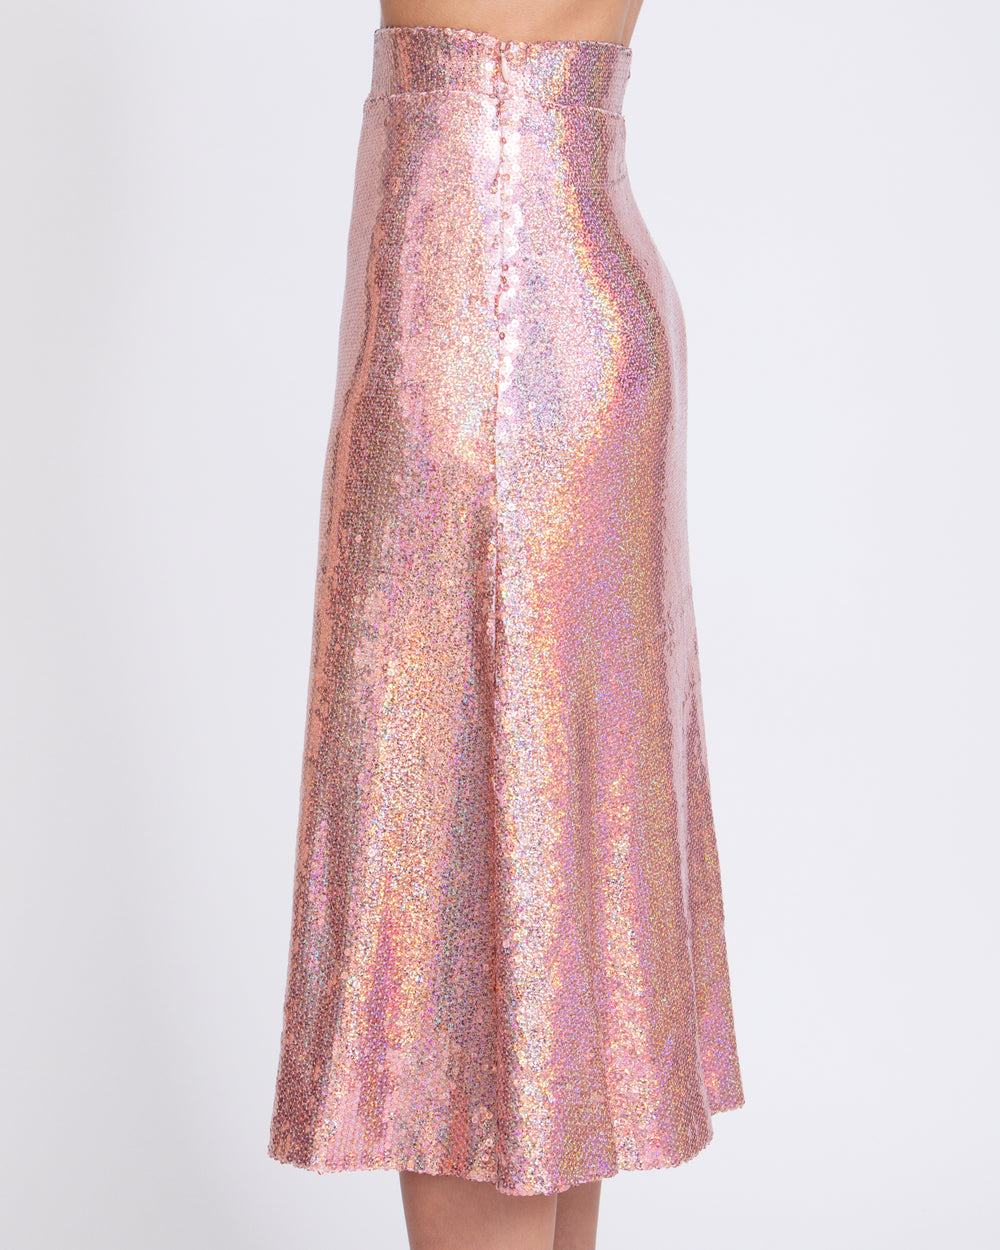 Blush Holographic Long Skirt